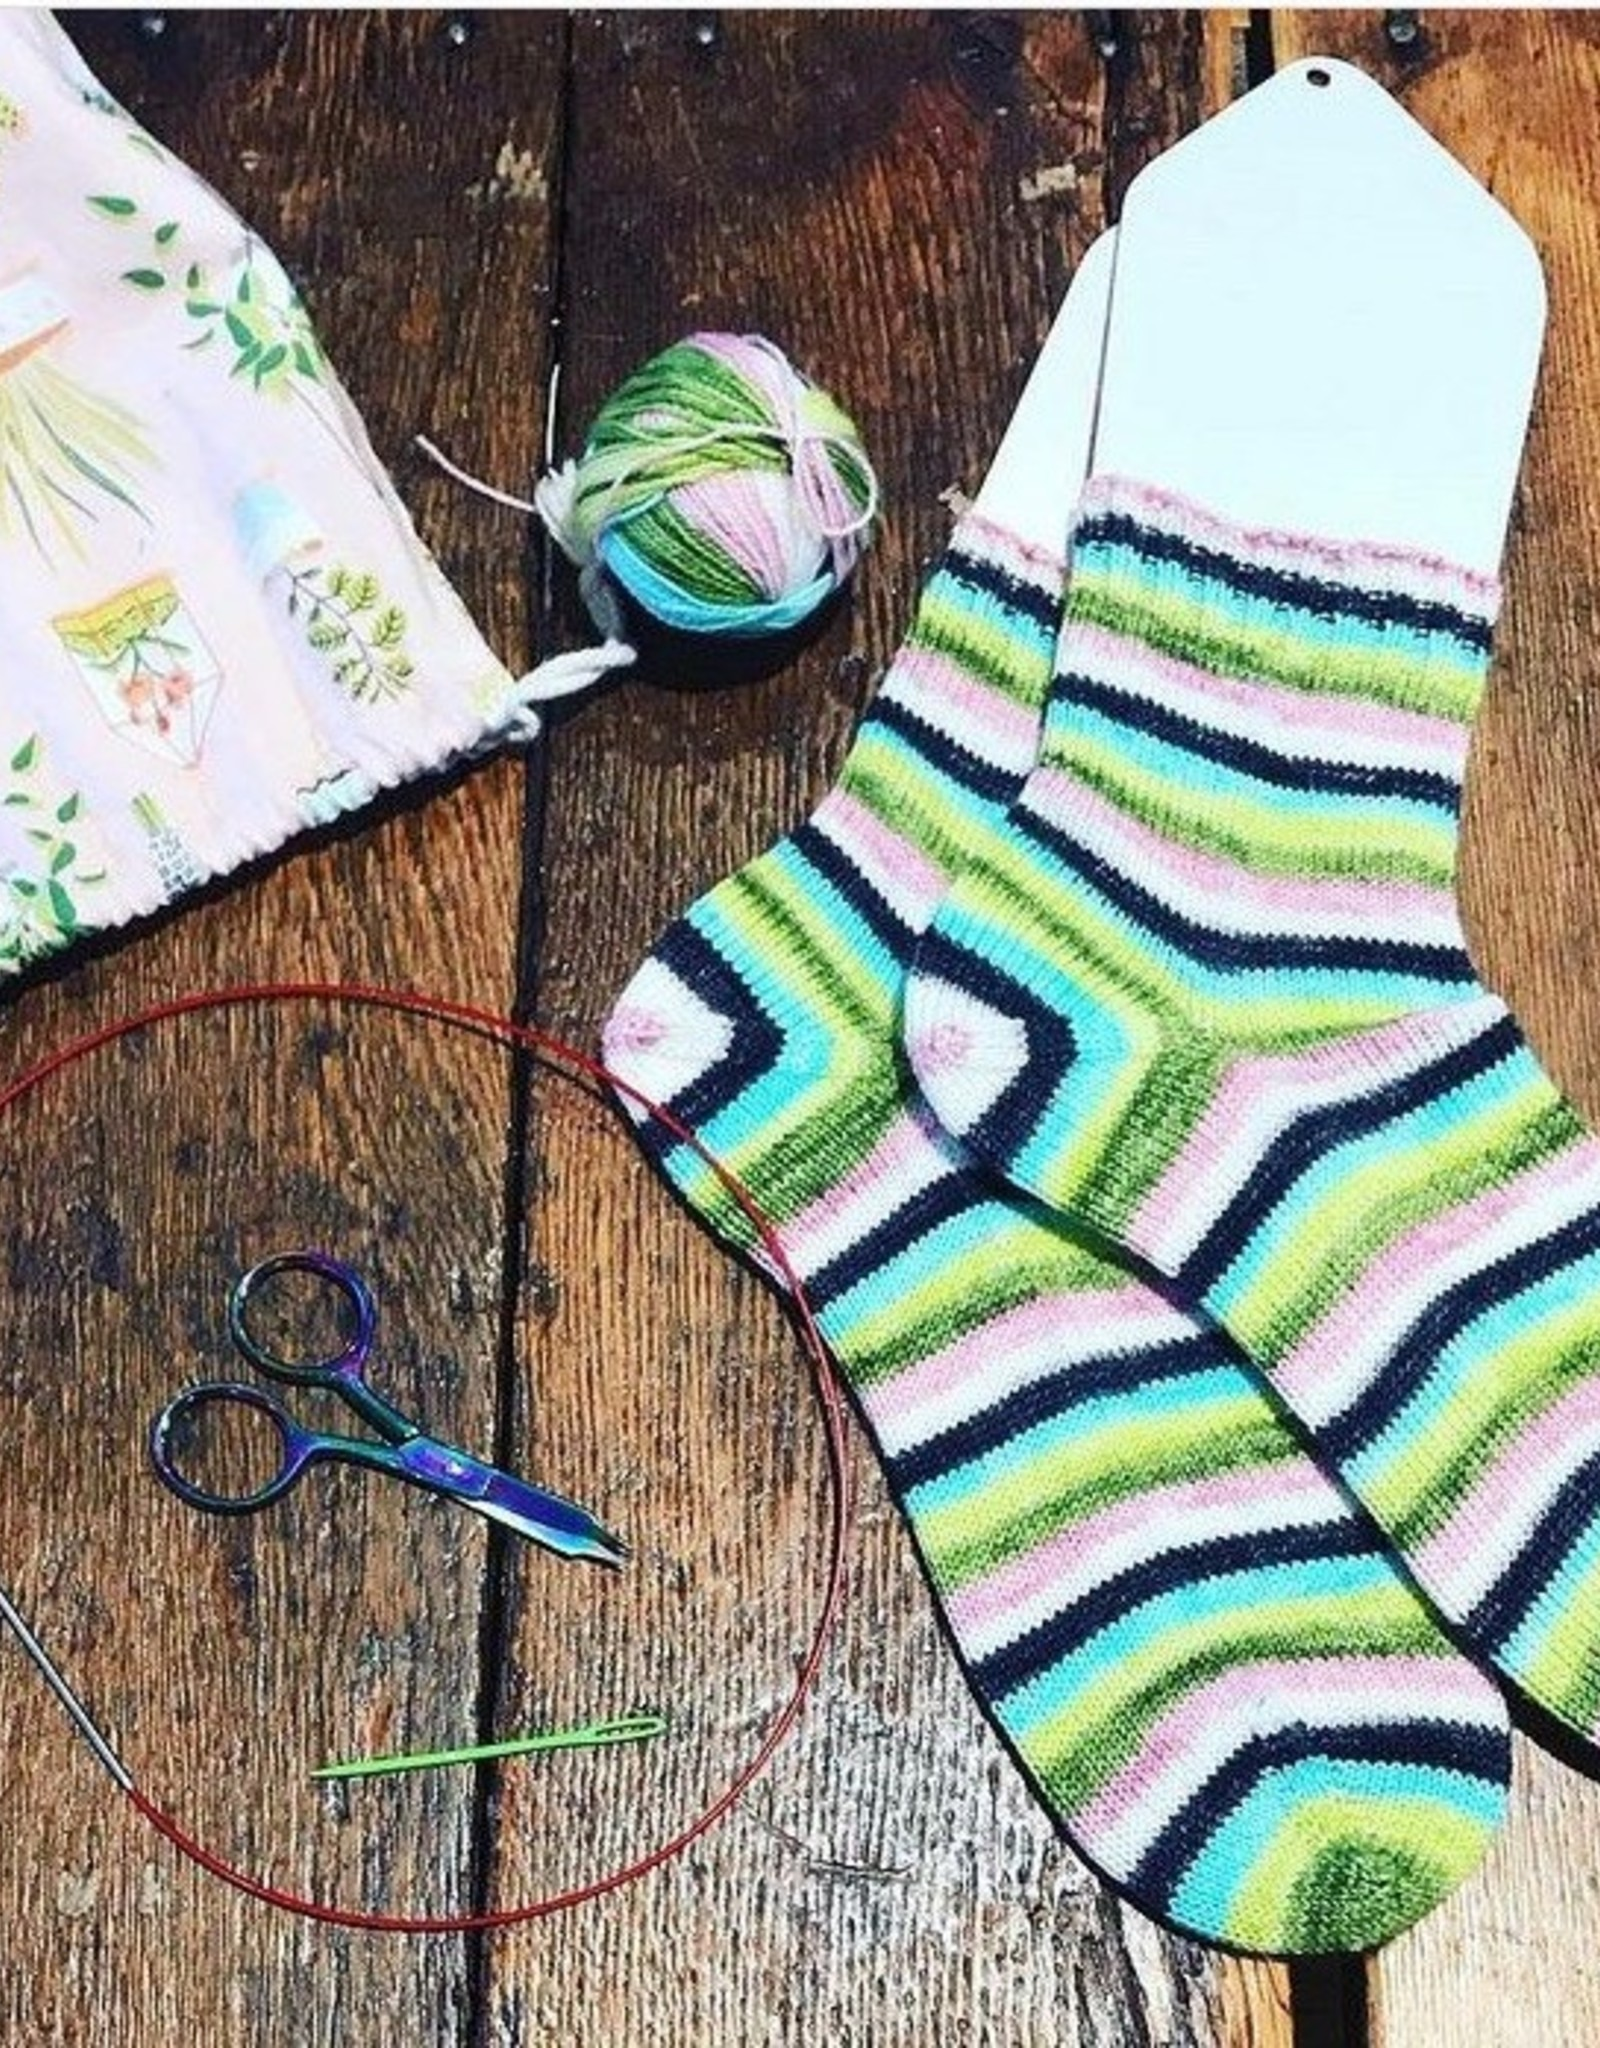 Knit Socks  - After-Thought Heel